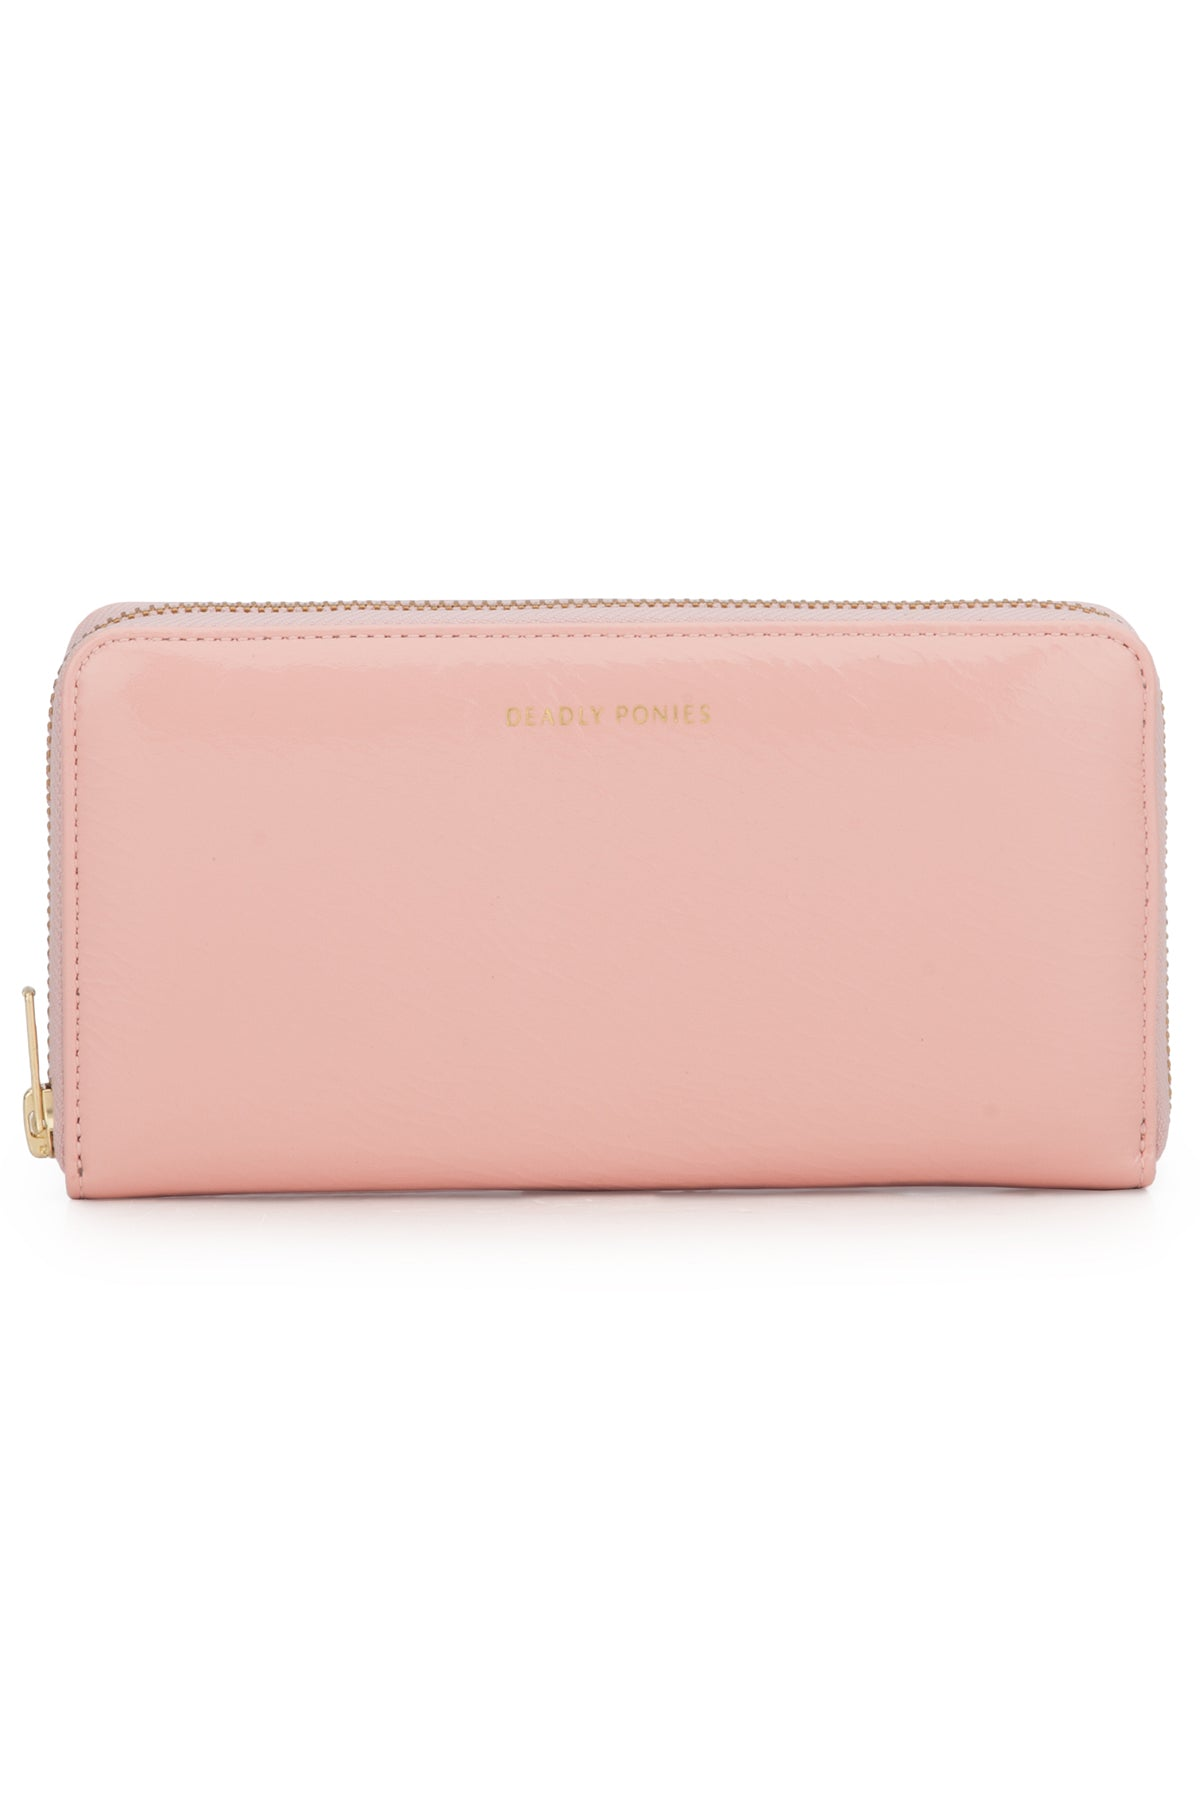 Deadly Ponies Mr Wallet Patent // Mushy Blush